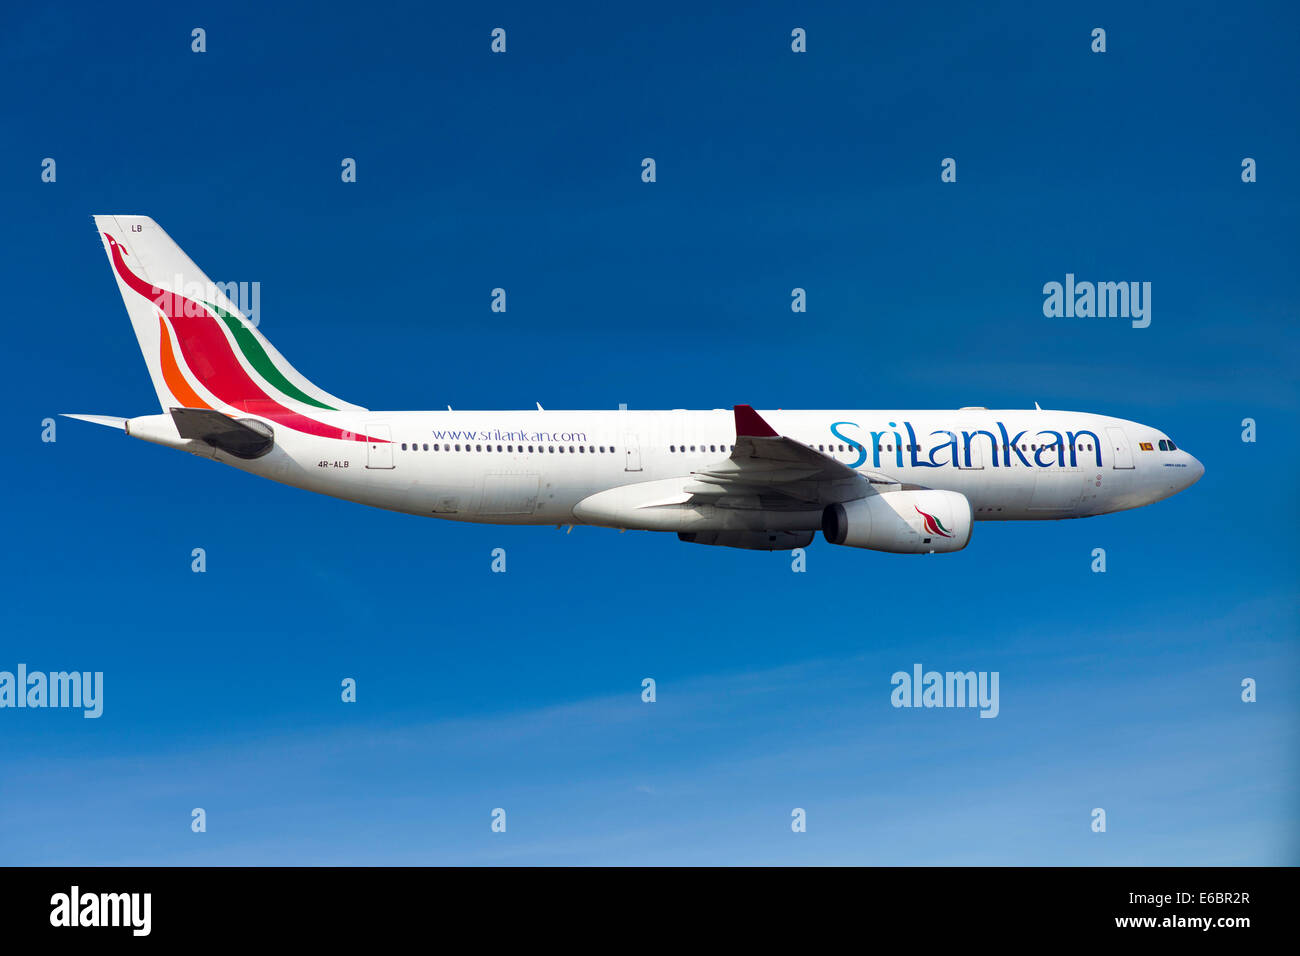 SriLankan Airlines Airbus A330-243 in flight - Stock Image